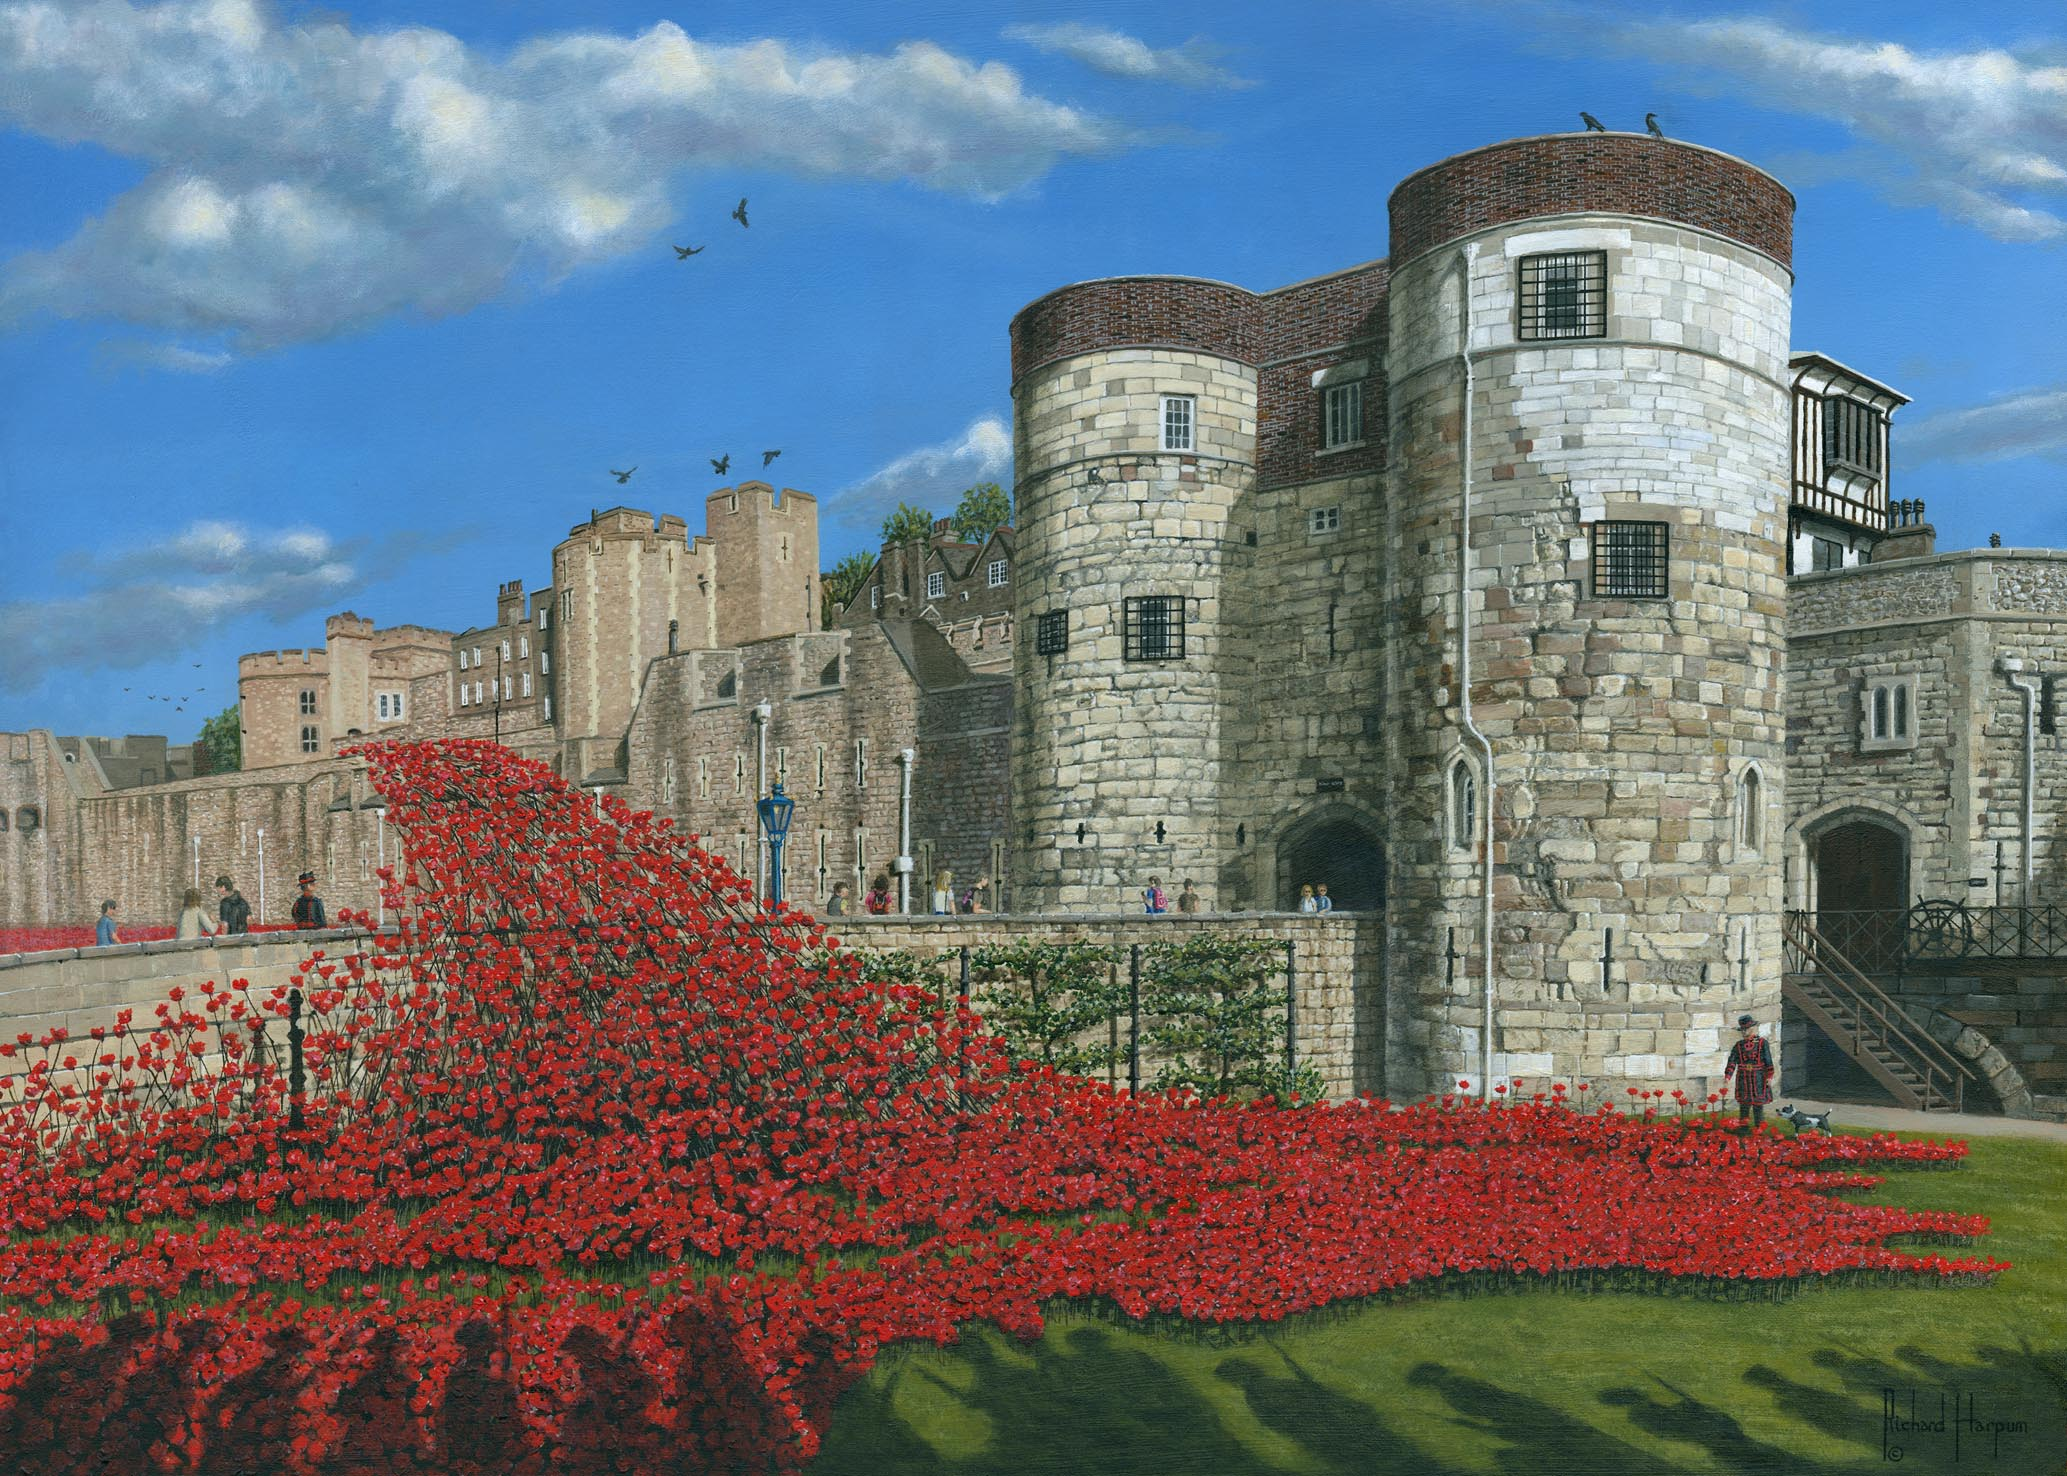 Tower Of London Poppies Blood Swept Lands And Seas Of Red - Tower of london river of poppies